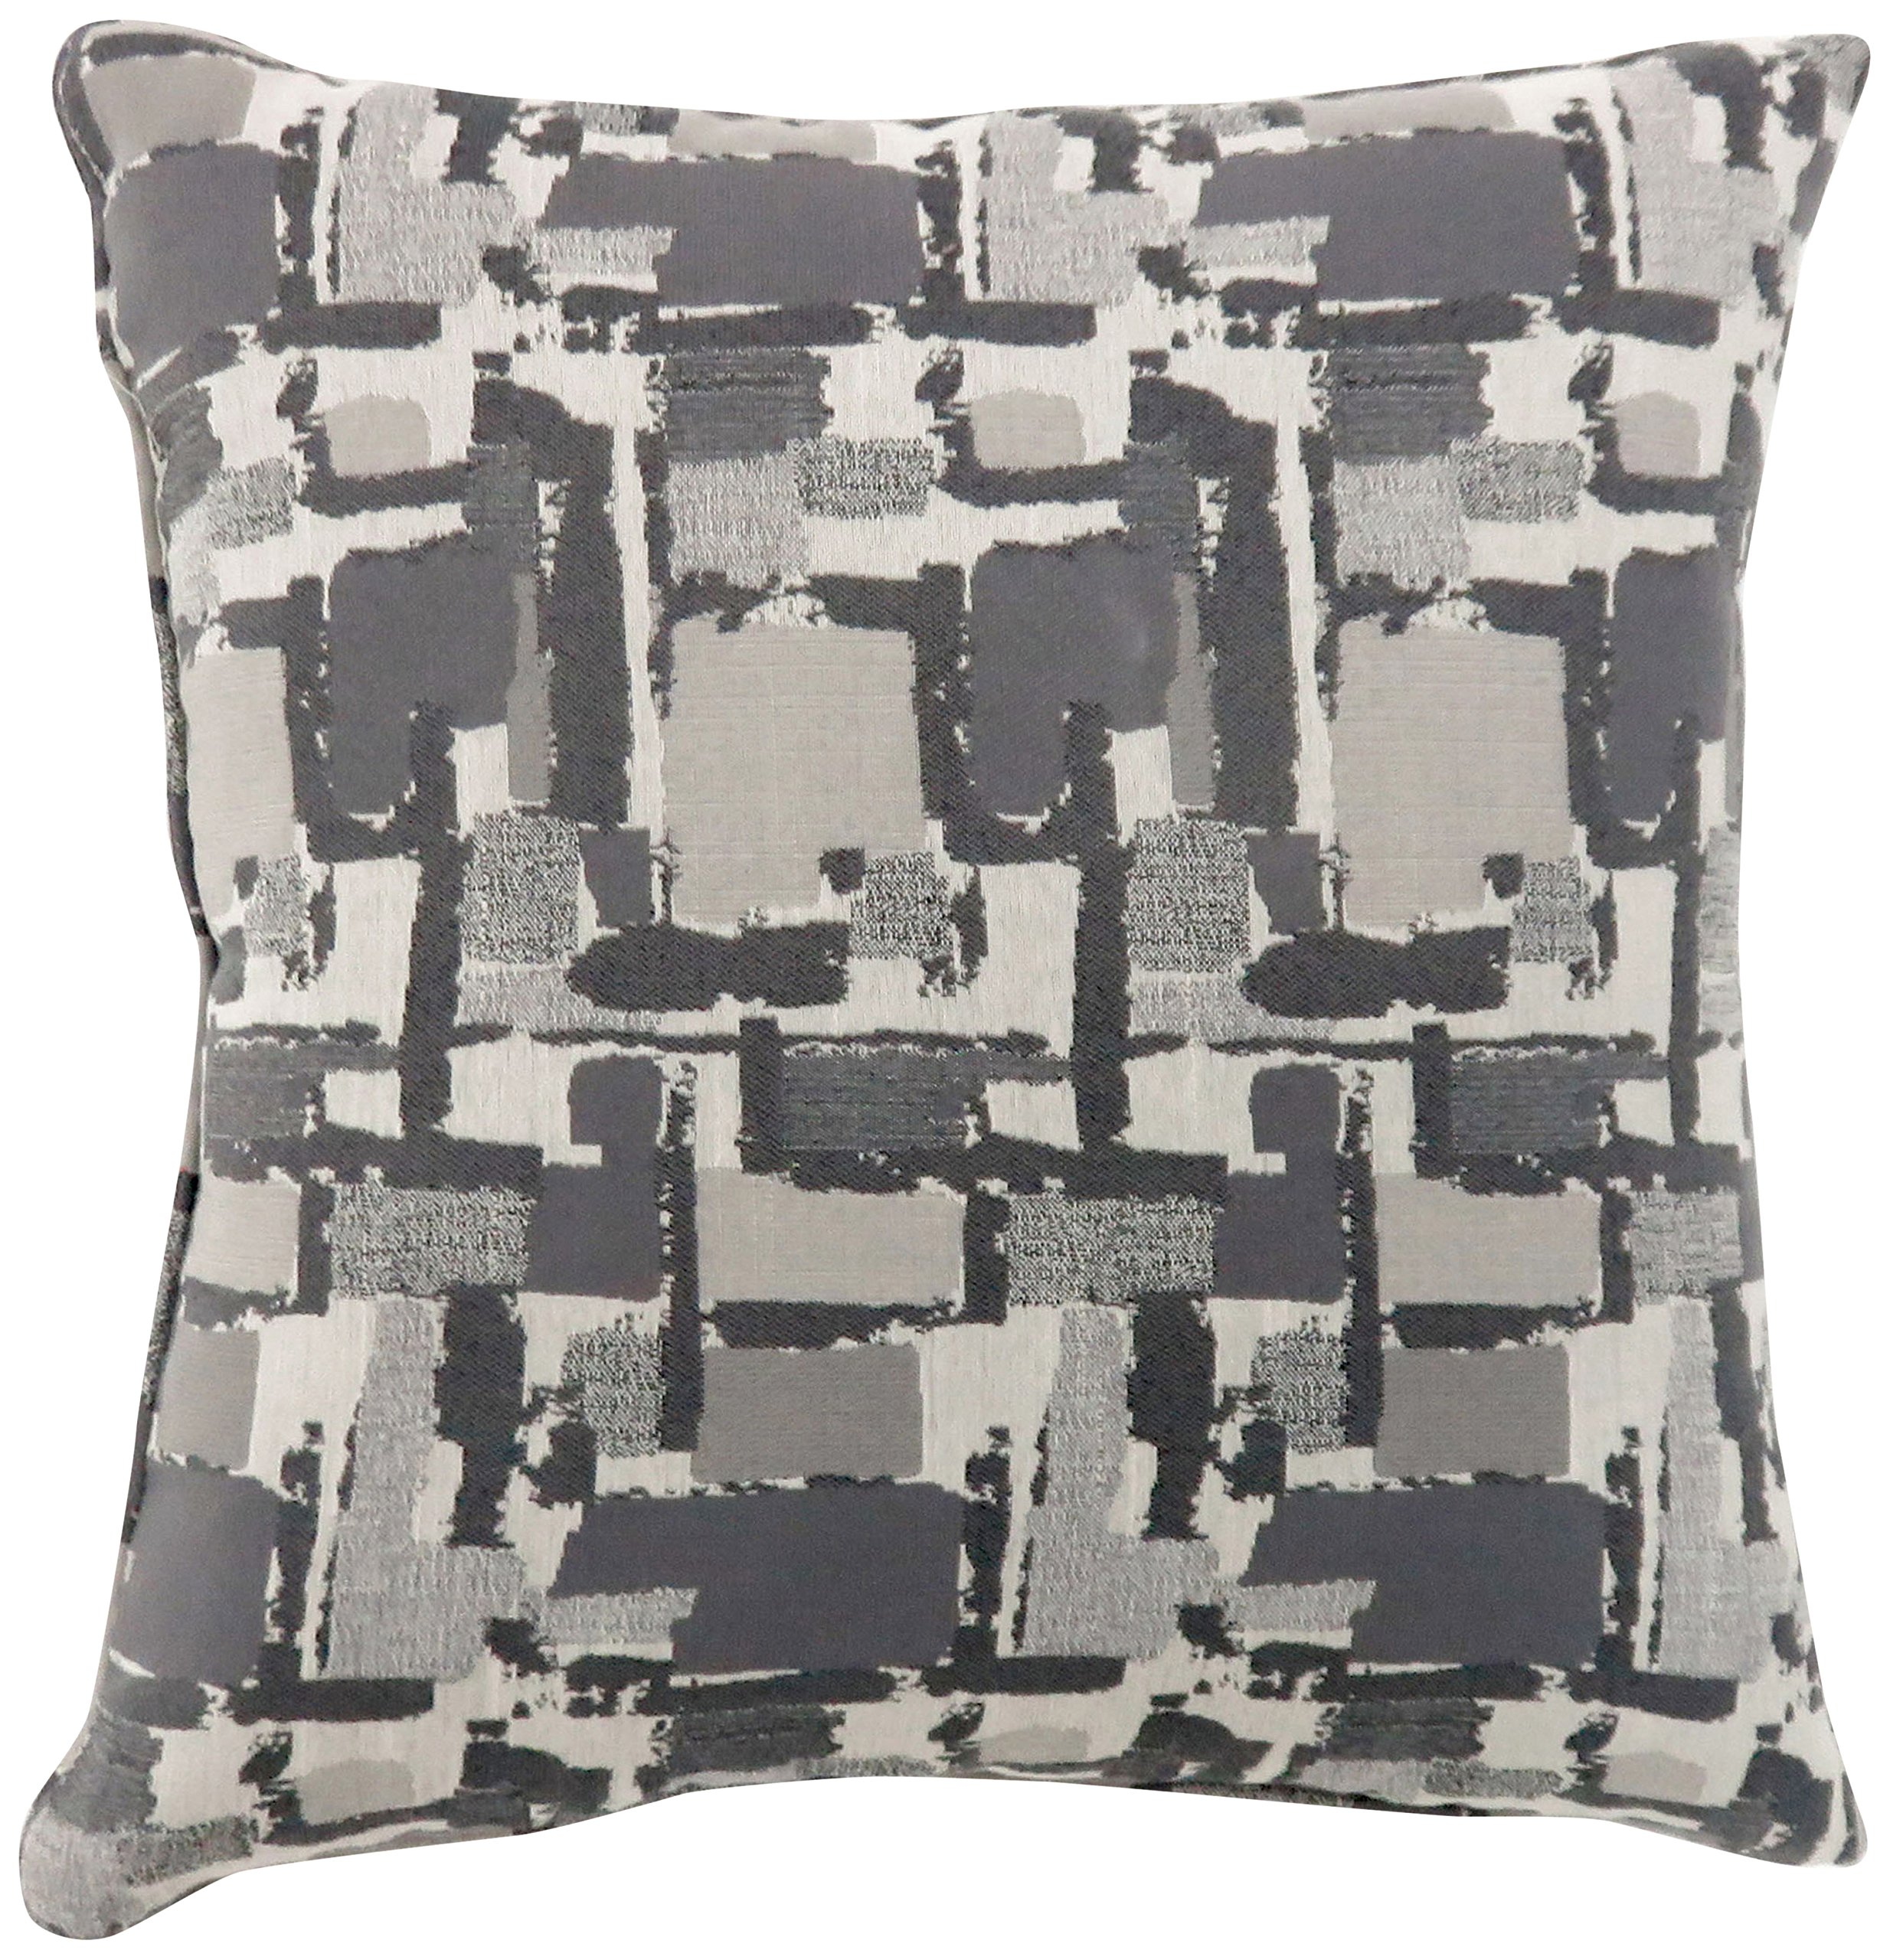 HOMES: Inside + Out 100% Polyester Decorative Pillow, Large, Gray, 2 Piece